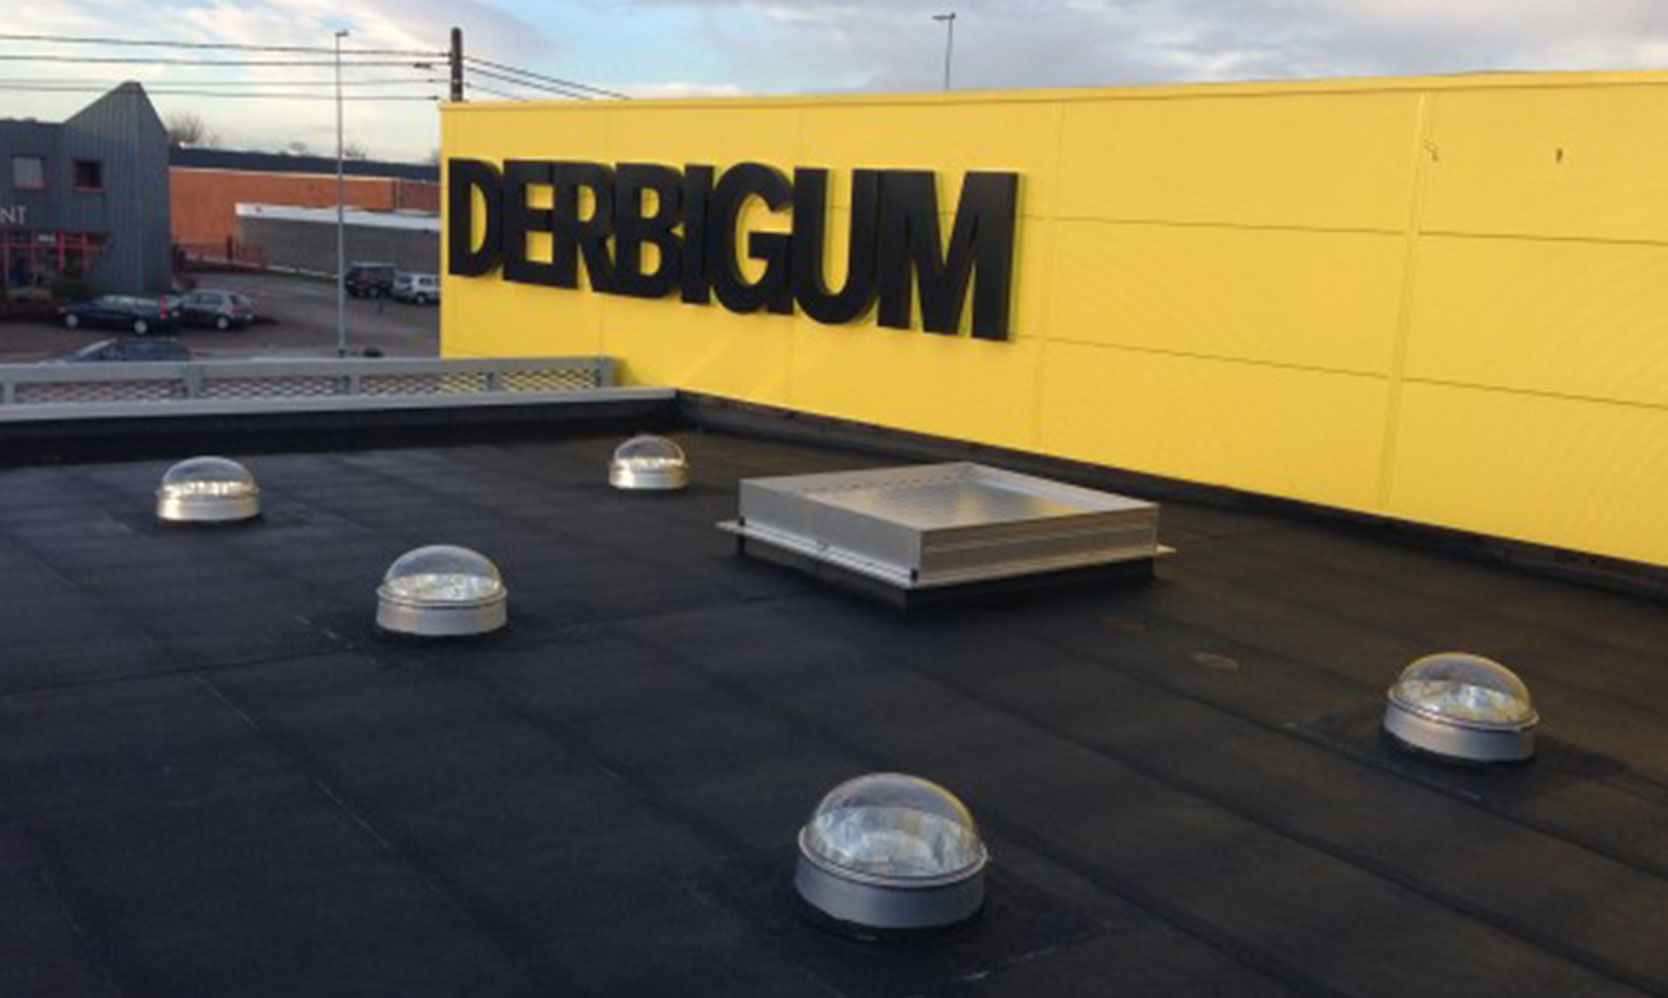 Derbigum Waterproofing